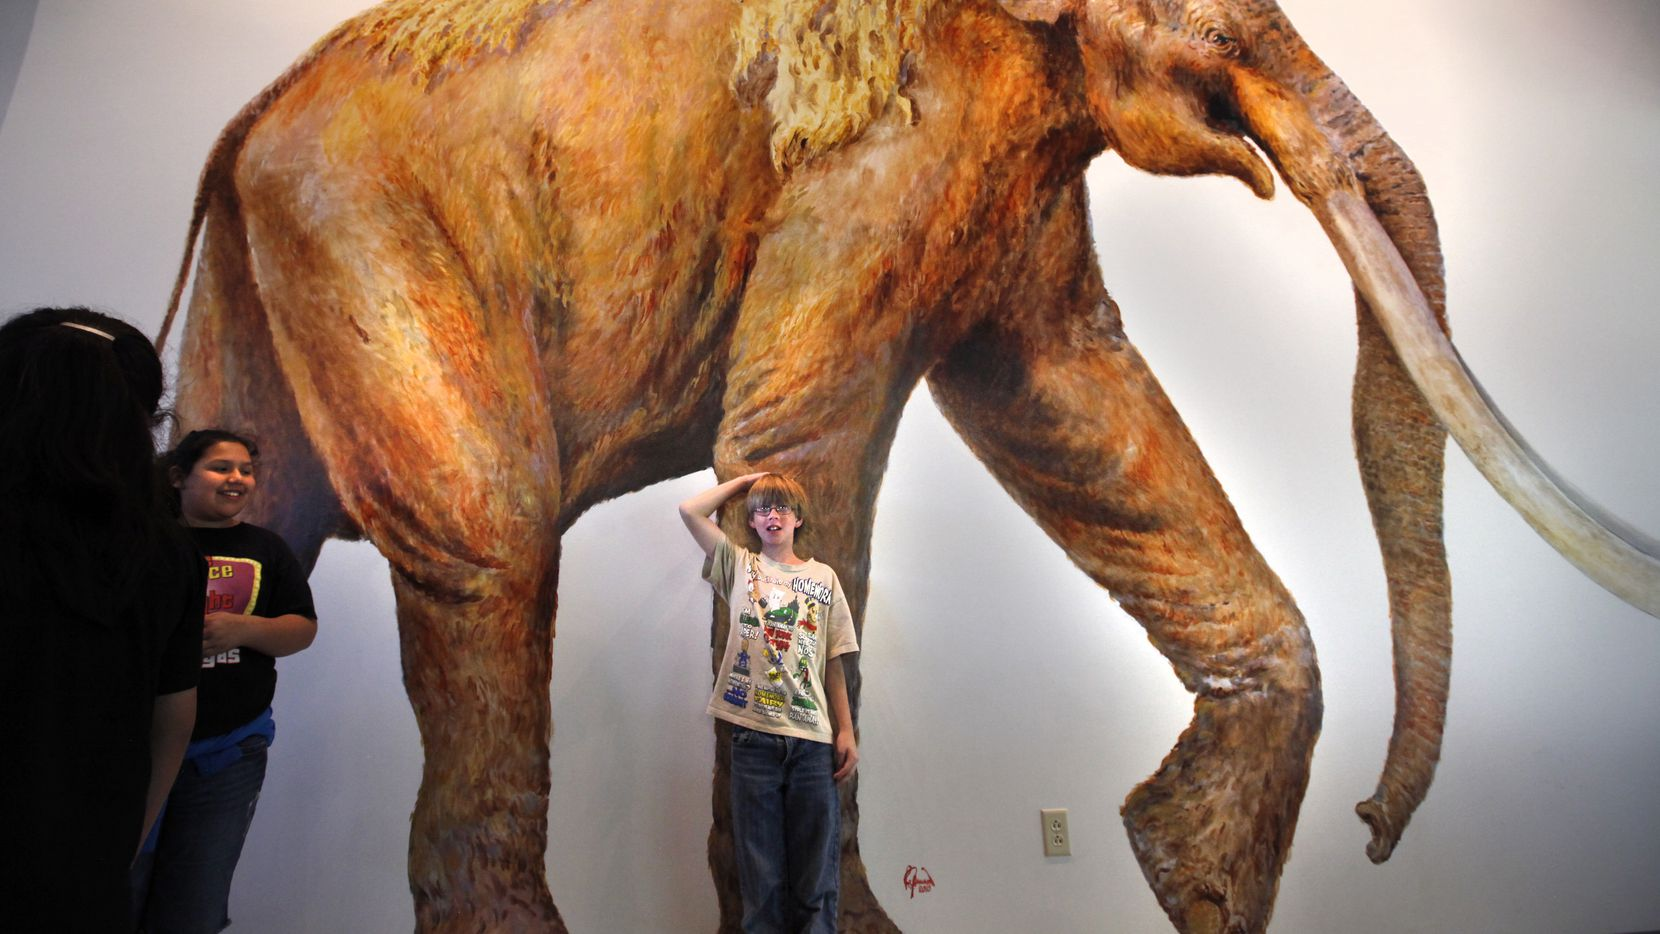 jacob Jean measures his height compared to a mural of a mammoth during their field trip to the Waco Mammoth Site in Waco, TX on May 3, 2011. At left facing camera is Melenie (cq) Juarez, also a 5th grader. Pending legislation would designate the Waco Mammoth Site a national monument through the use of private funds and limited federal oversight. ( Kye R. Lee / The Dallas Morning News )    05092011xNEWS